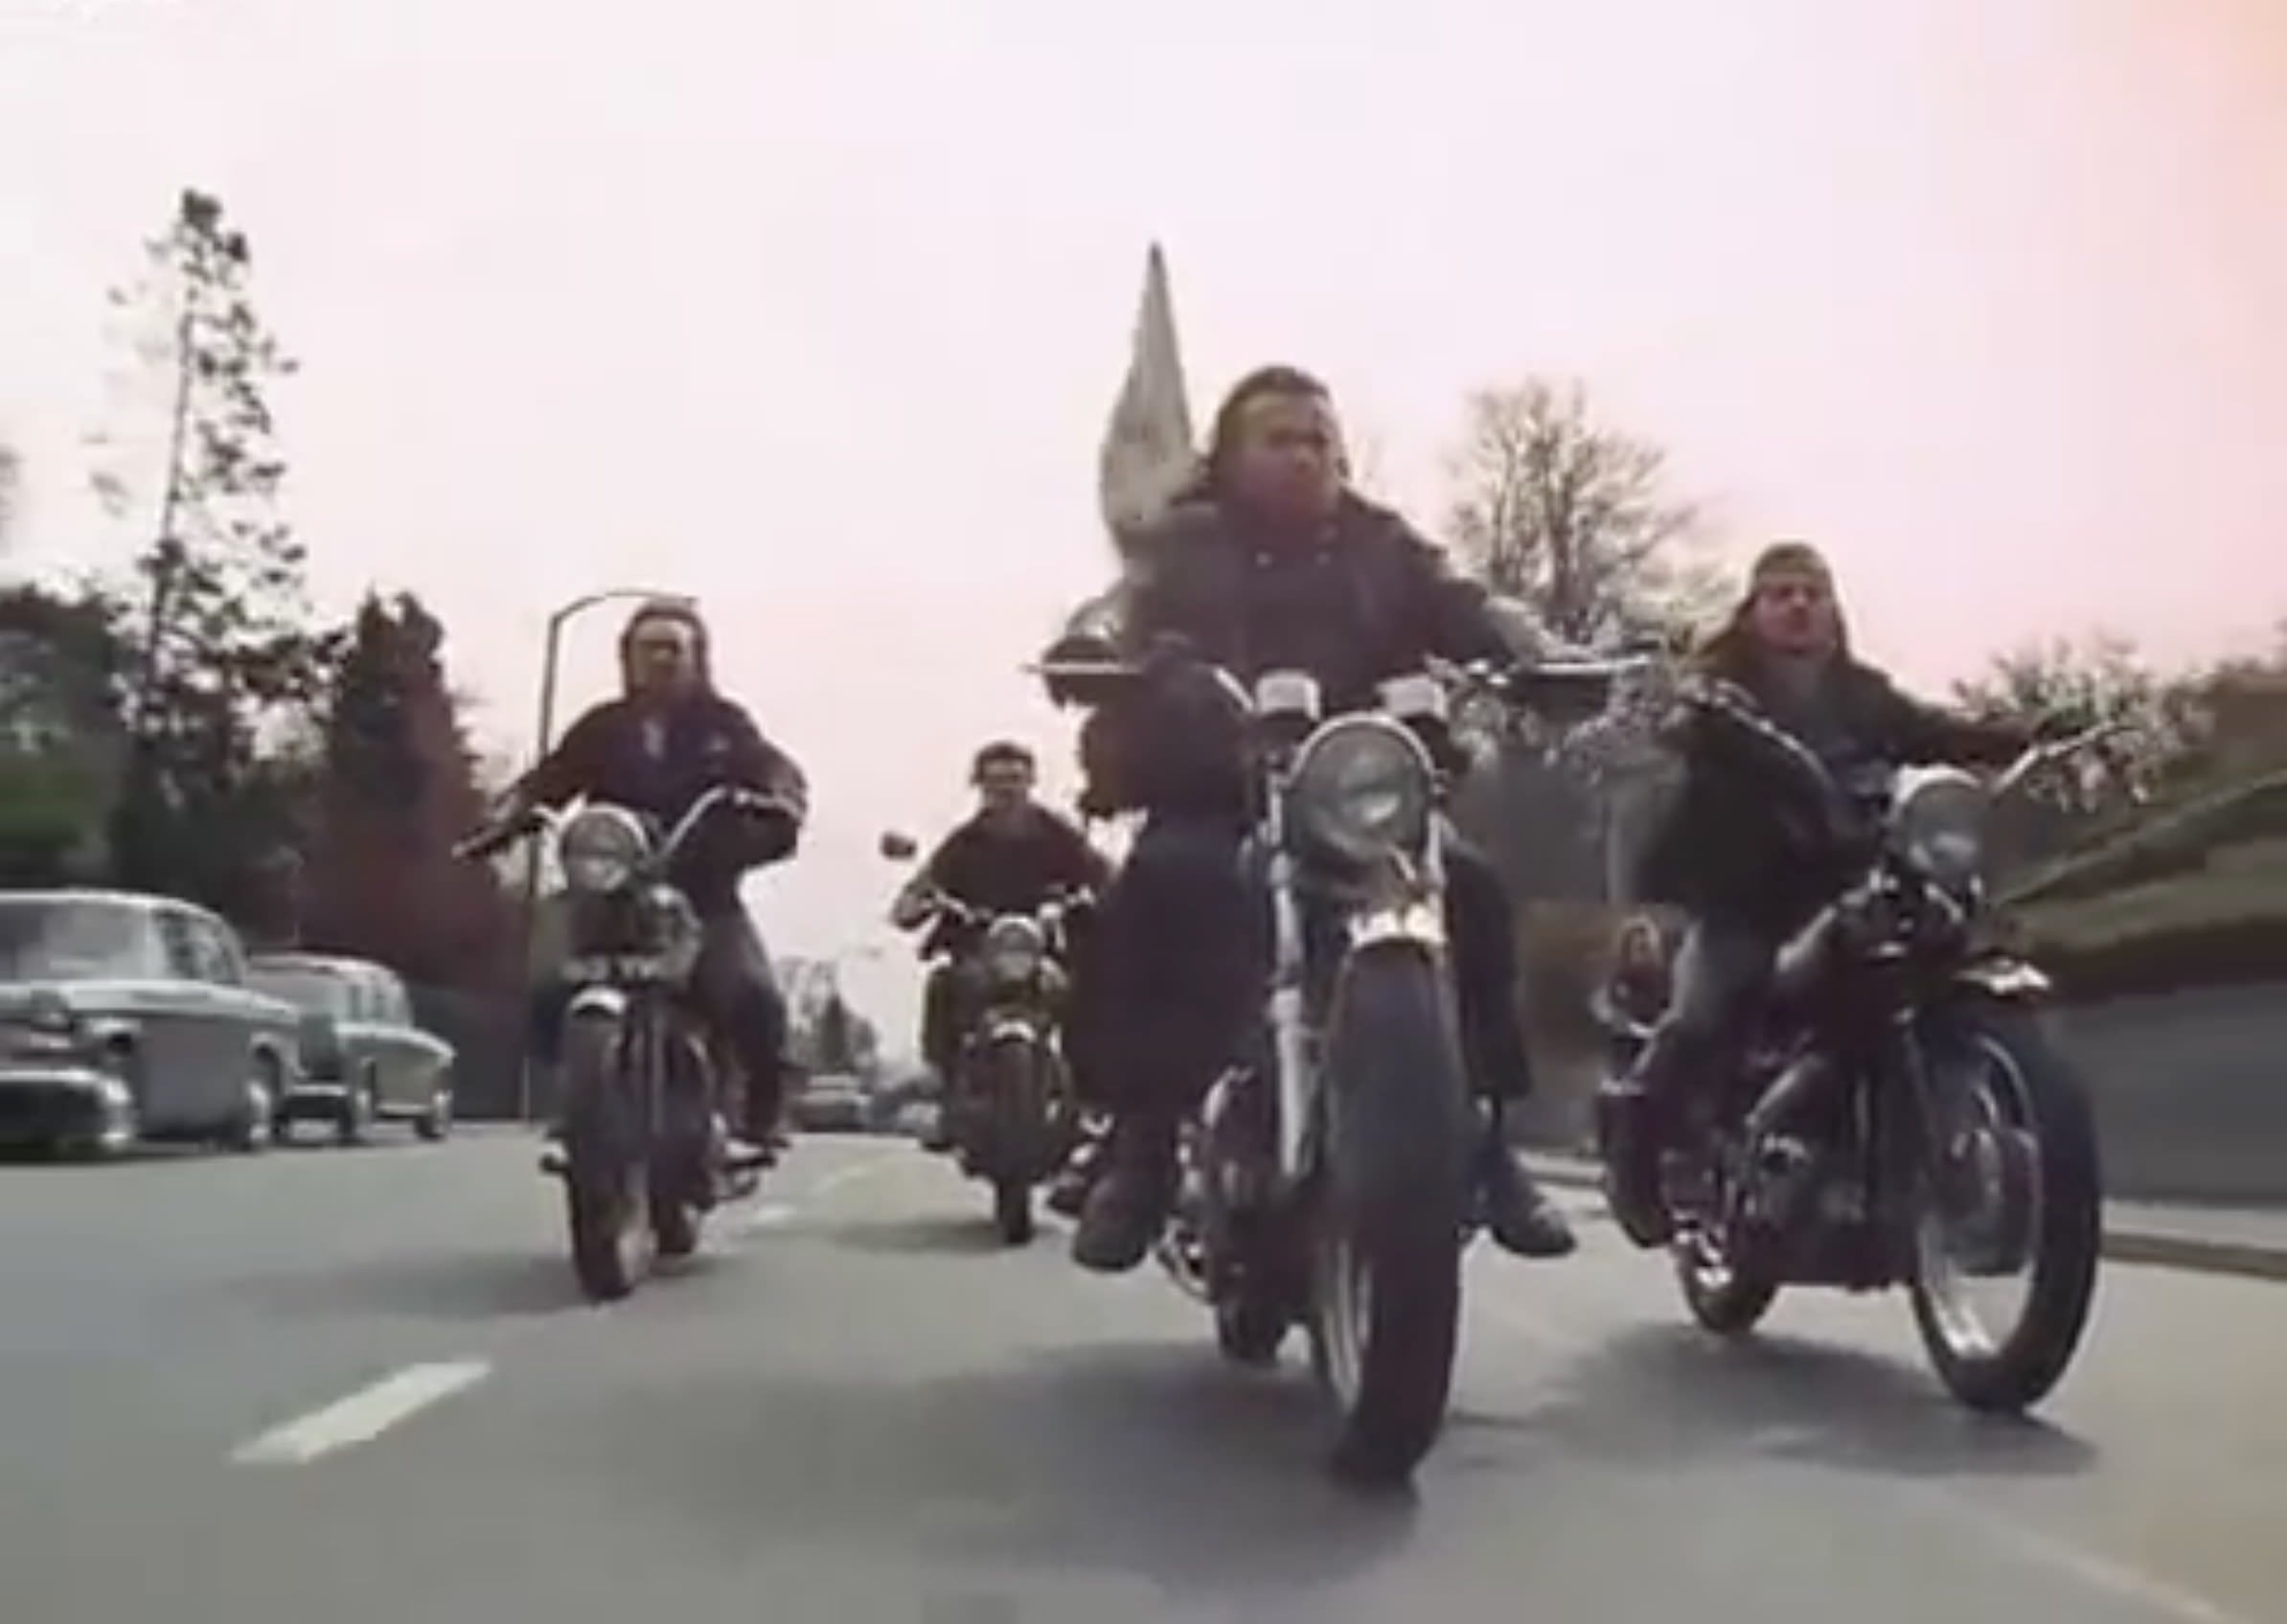 1973 Documentary - Hells Angels London